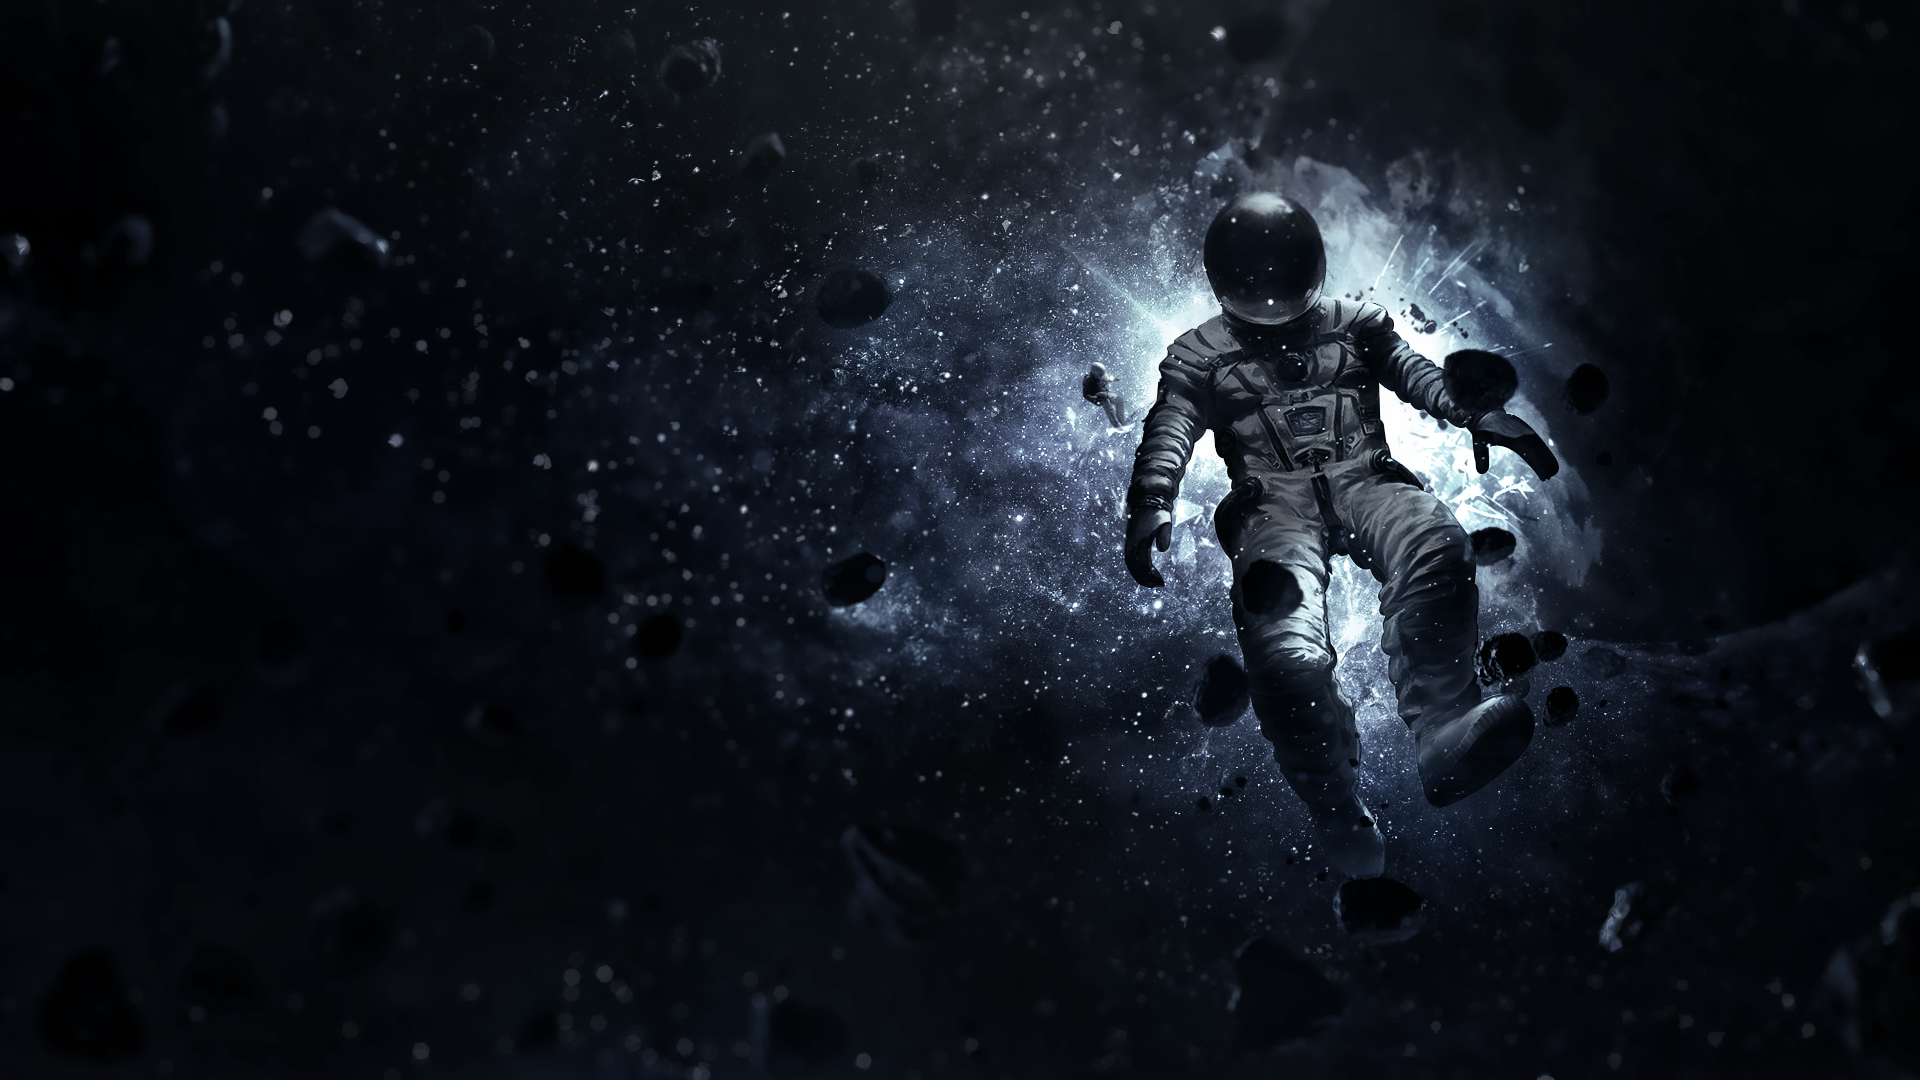 Astronaut lost in space wallpapers and images   wallpapers pictures 1920x1080